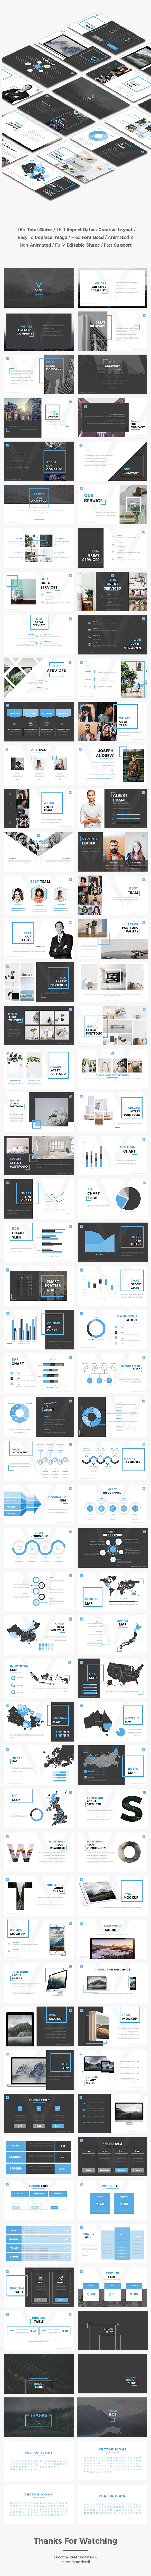 GraphicRiver Vieq Creative PowerPoint Template 20956008